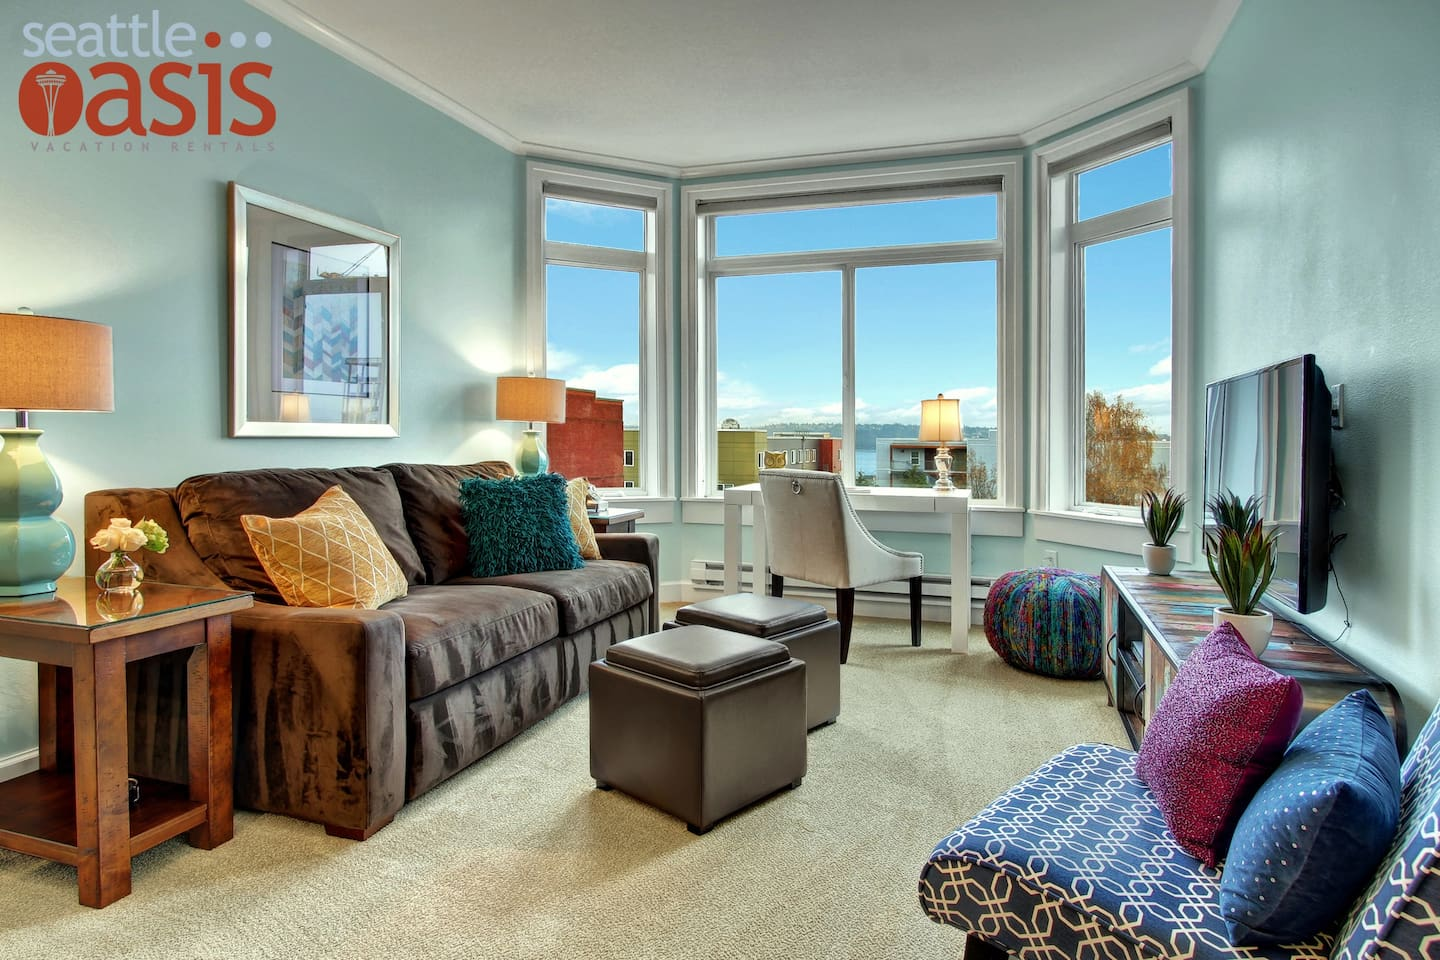 Enjoy an amazing view of Elliot Bay from the comfort of vibrant living room!